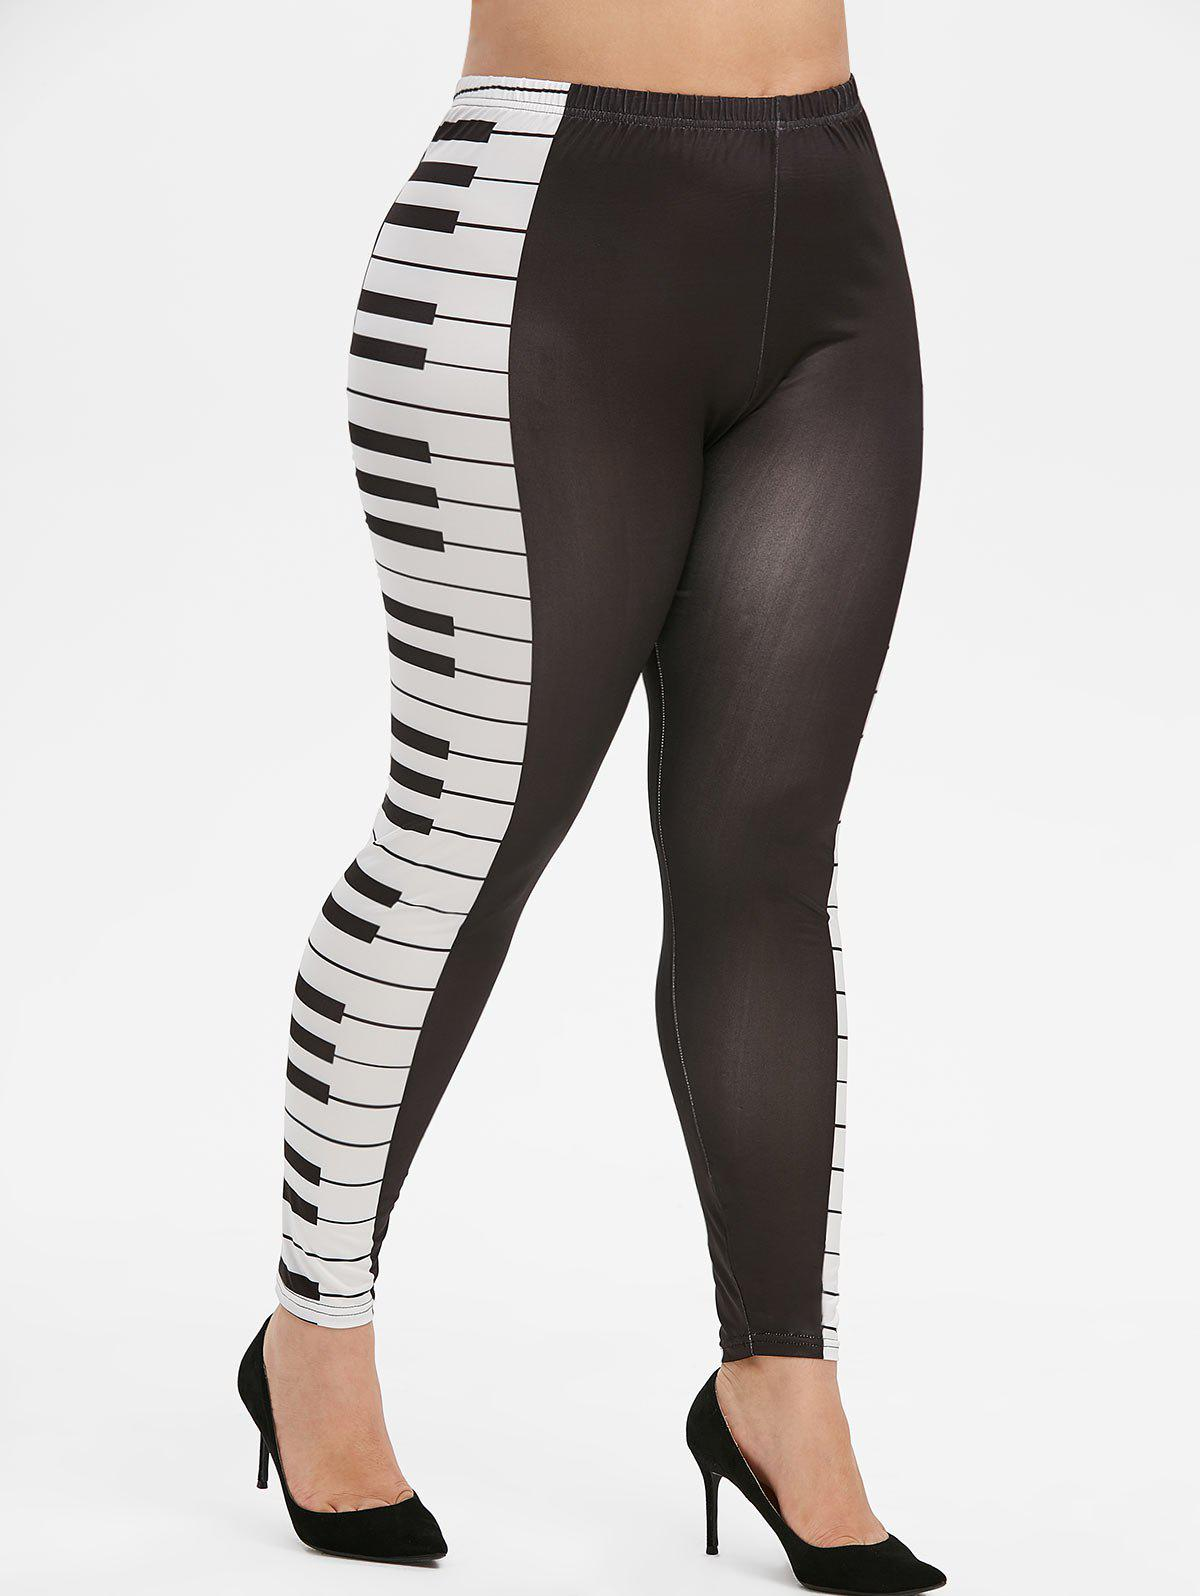 Shop High Waisted Pull On Piano Keys Print Leggings